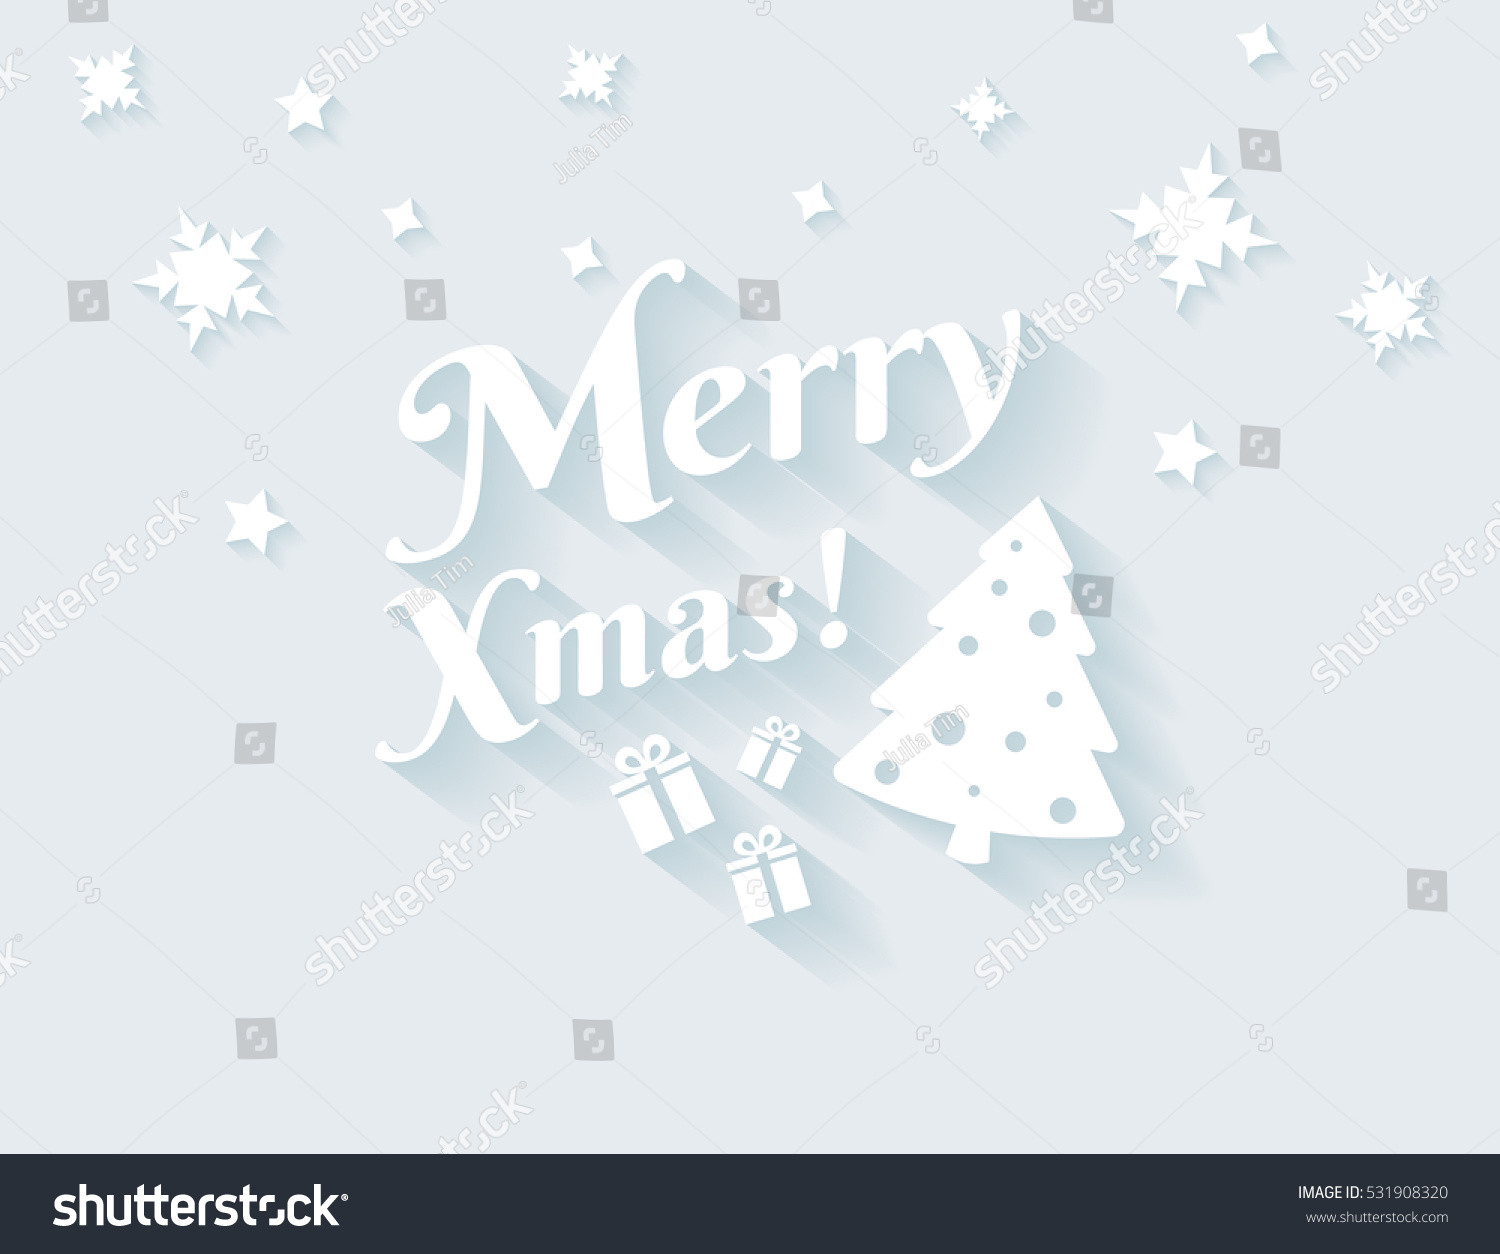 Merry xmas white text long shadows stock vector 531908320 shutterstock merry xmas white text with long shadows for christmas greetings flat illustration of modern christmas m4hsunfo